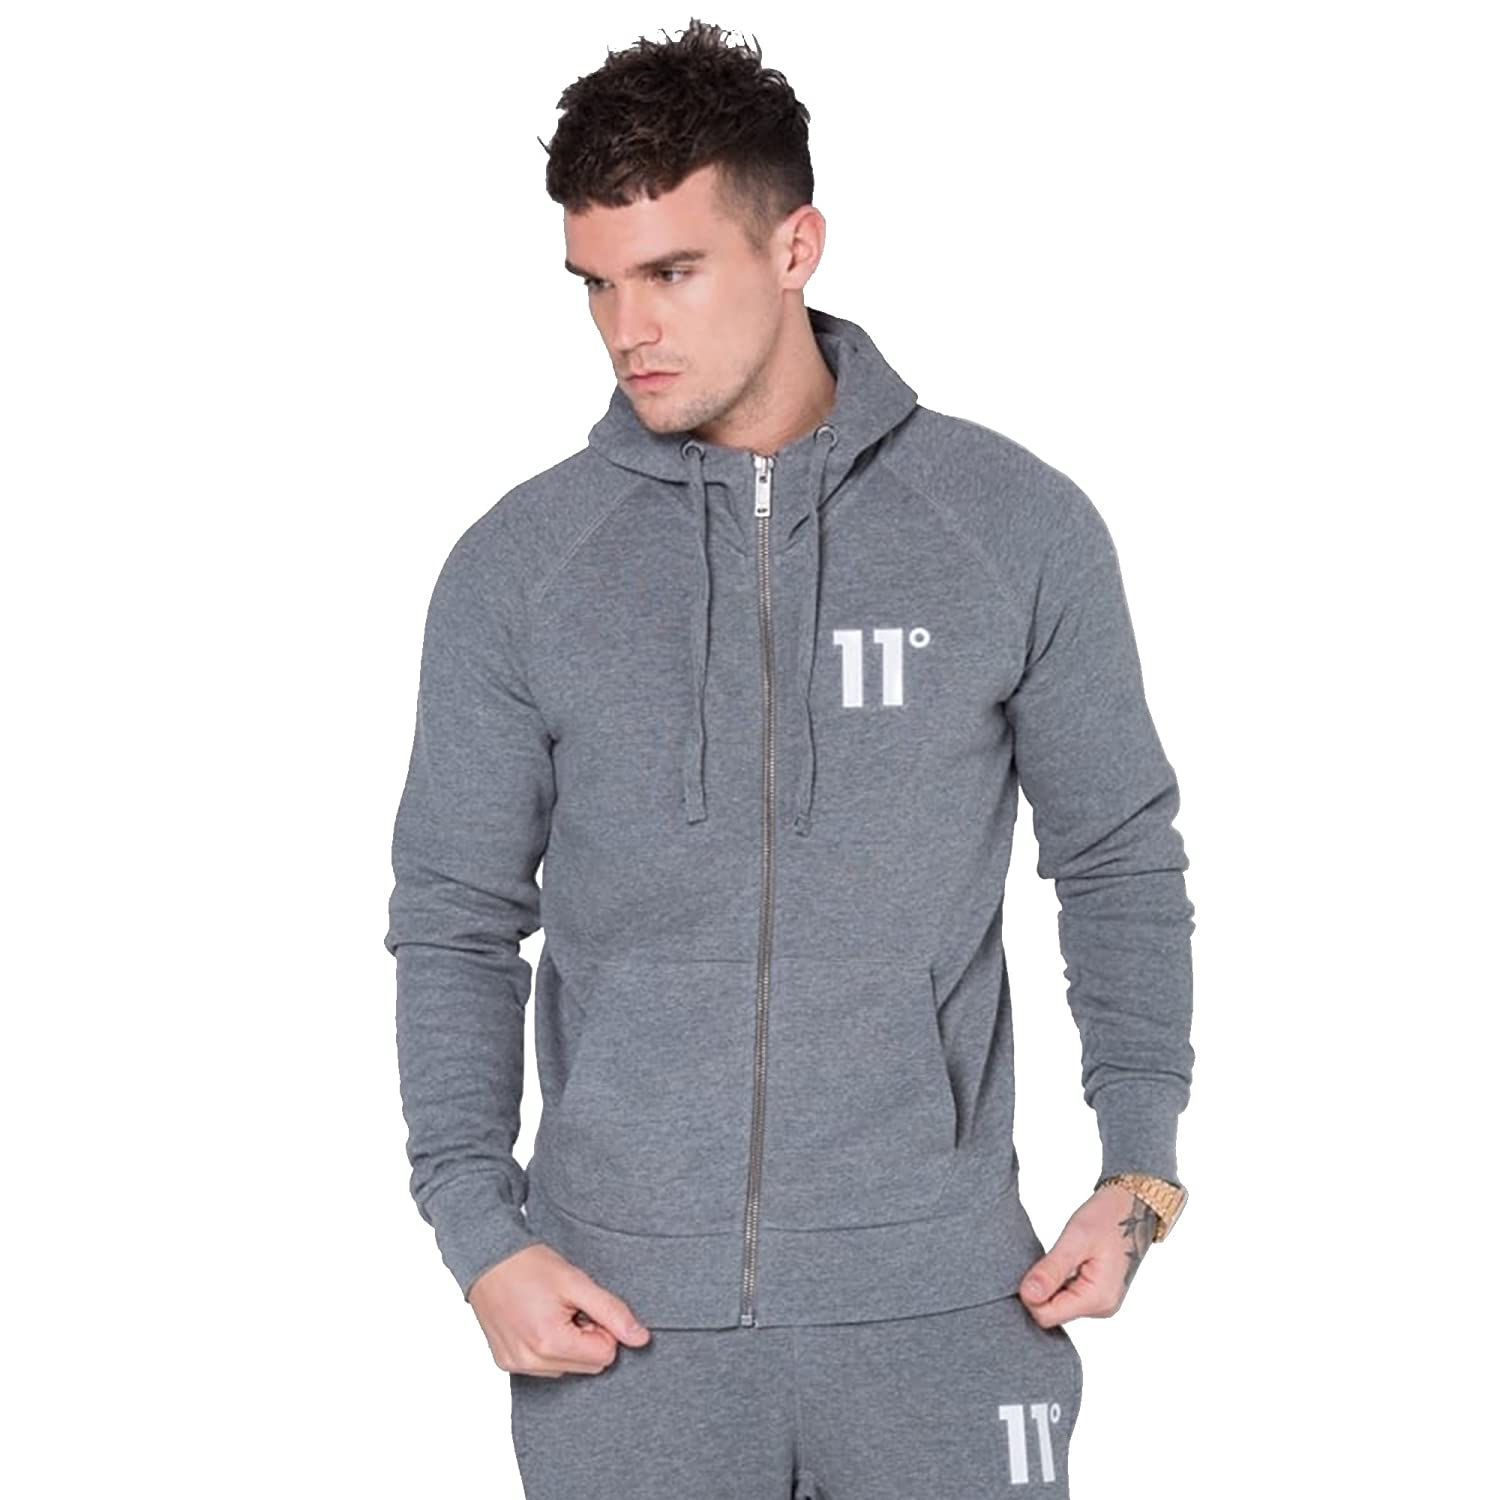 Eleven Degrees 11 Degrees 11D-653 Core Zip Up Hoodie - Charcoal Large Charcoal